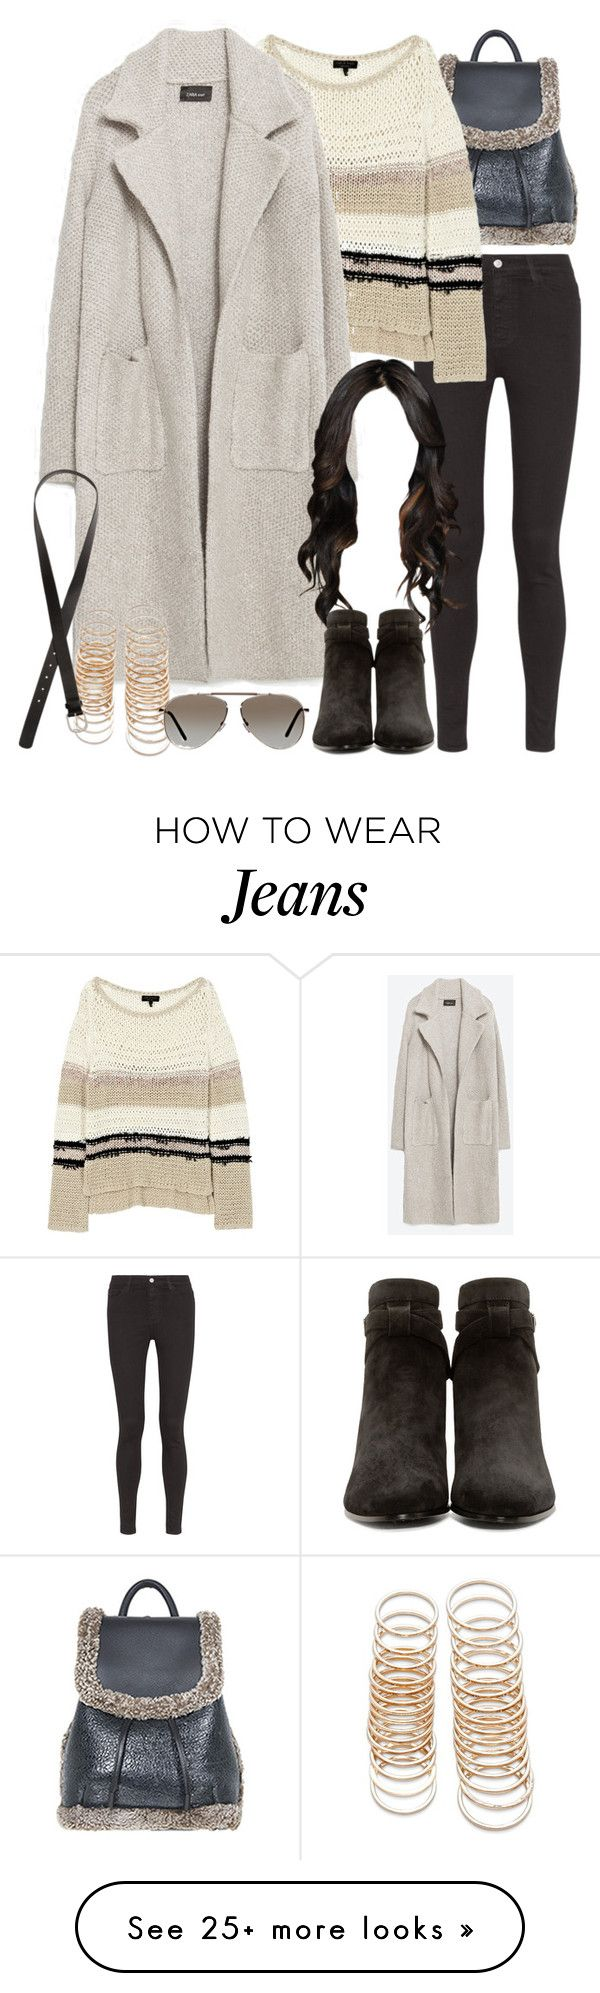 """""""Untitled #8245"""" by nikka-phillips on Polyvore featuring AG Adriano Goldschmied, rag & bone, Zara, Yves Saint Laurent, Forever 21, Tom Ford and H&M"""